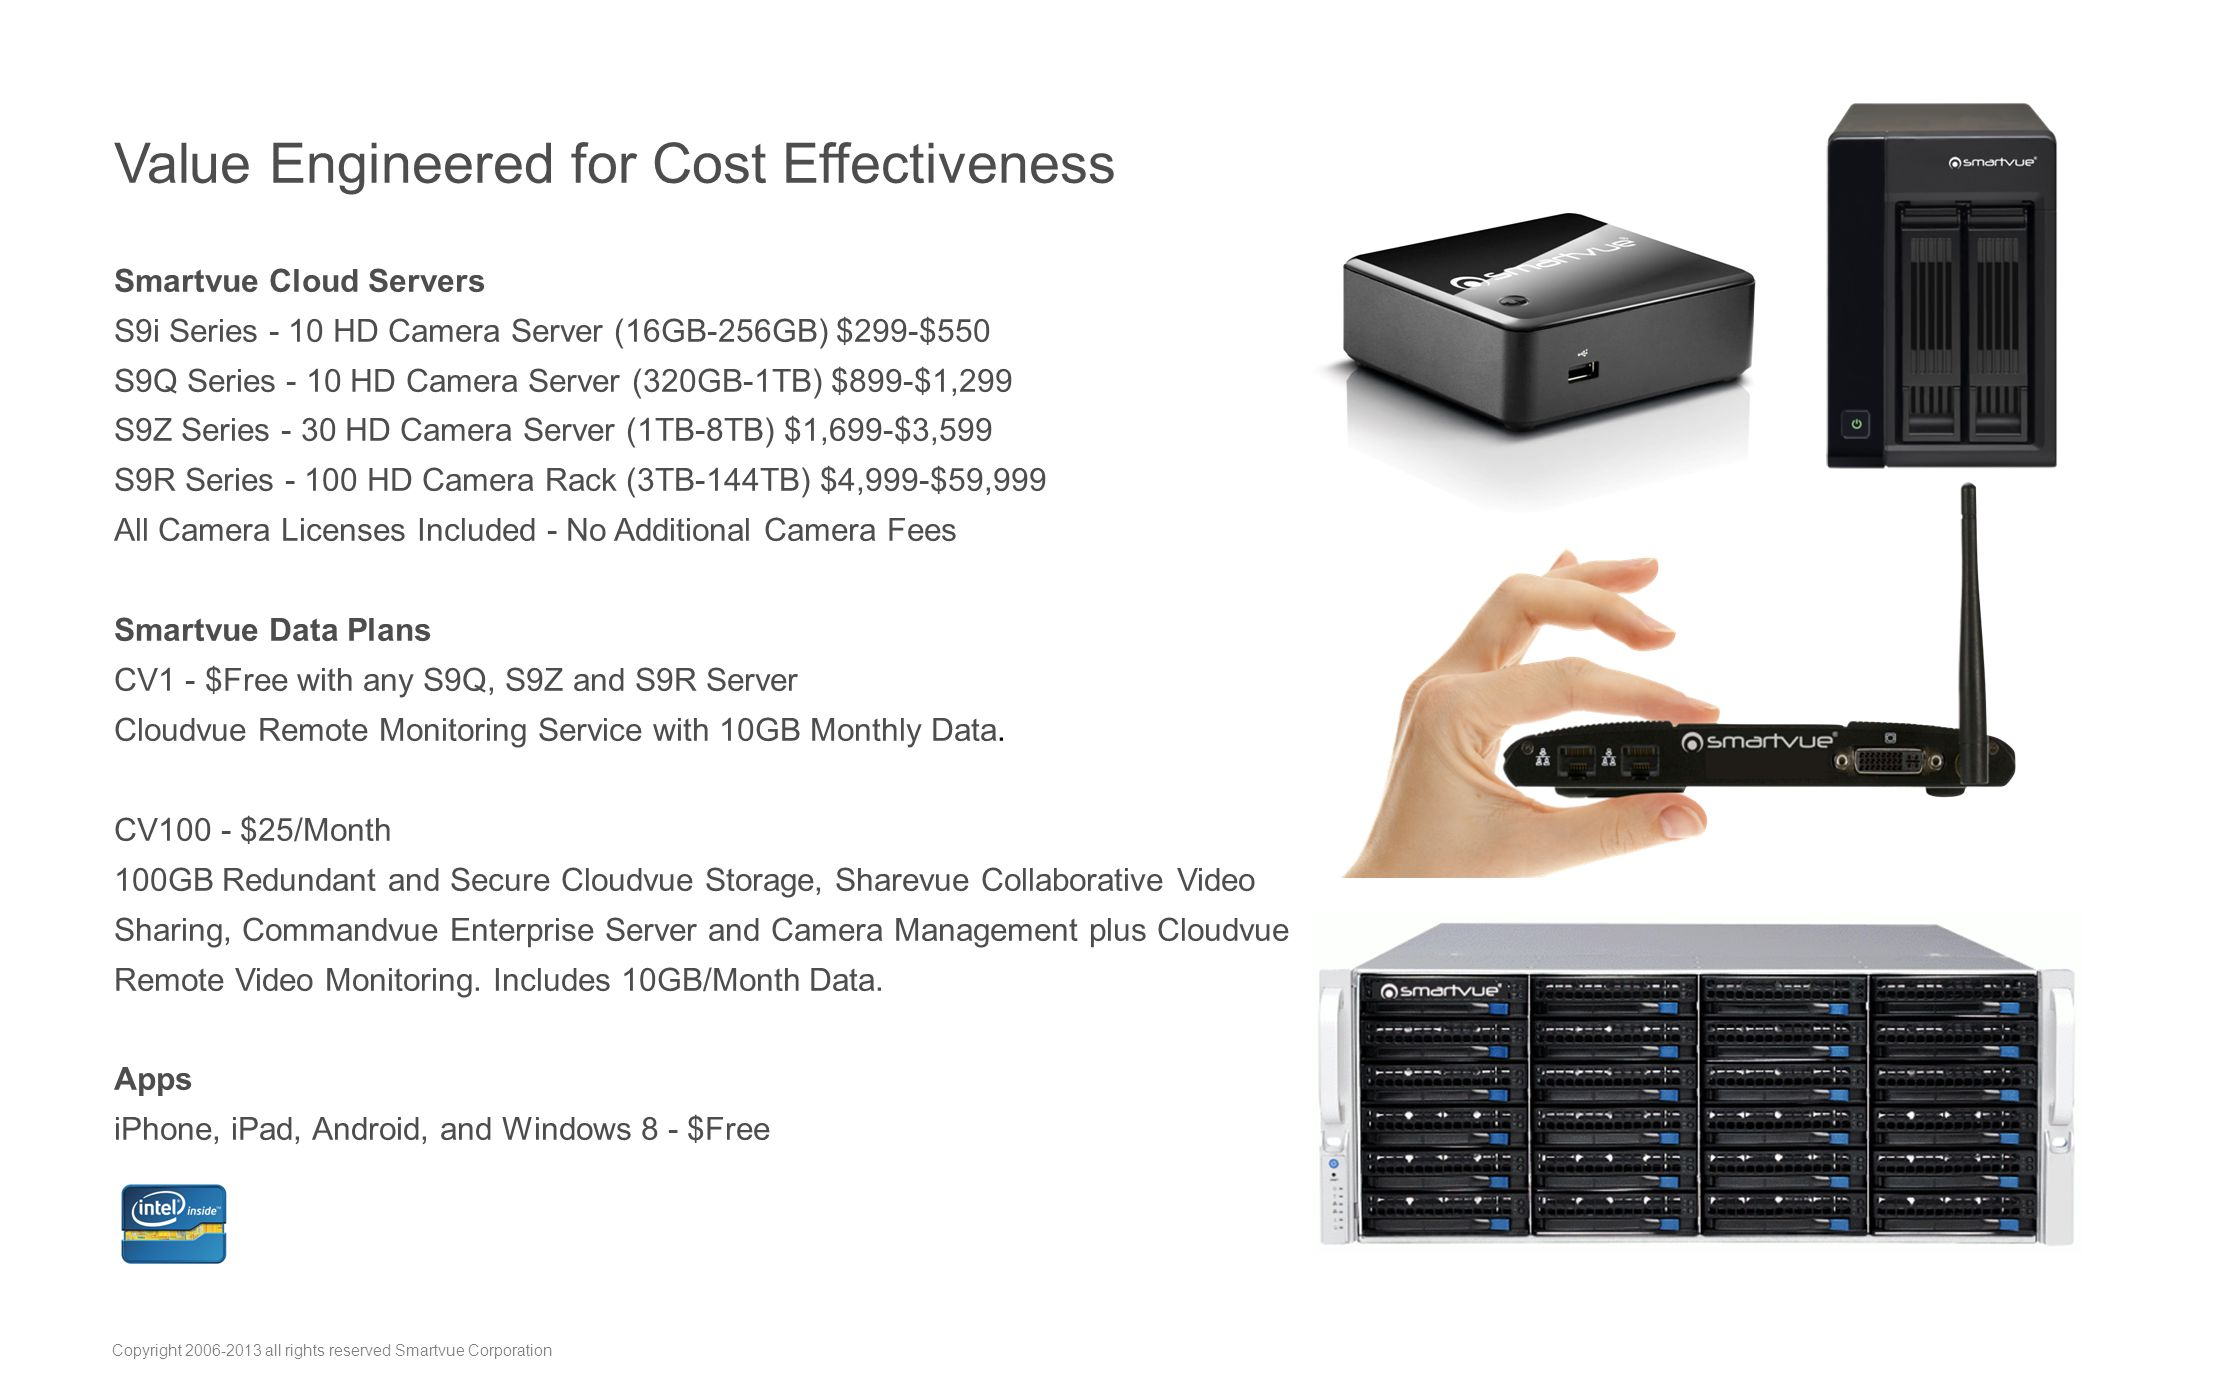 Value Engineered for Cost Effectiveness Smartvue Cloud Servers S9i Series - 10 HD Camera Server (16GB-256GB) $299-$550 S9Q Series - 10 HD Camera Server (320GB-1TB) $899-$1,299 S9Z Series - 30 HD Camera Server (1TB-8TB) $1,699-$3,599 S9R Series - 100 HD Camera Rack (3TB-144TB) $4,999-$59,999 All Camera Licenses Included - No Additional Camera Fees Smartvue Data Plans CV1 - $Free with any S9Q, S9Z and S9R Server Cloudvue Remote Monitoring Service with 10GB Monthly Data.